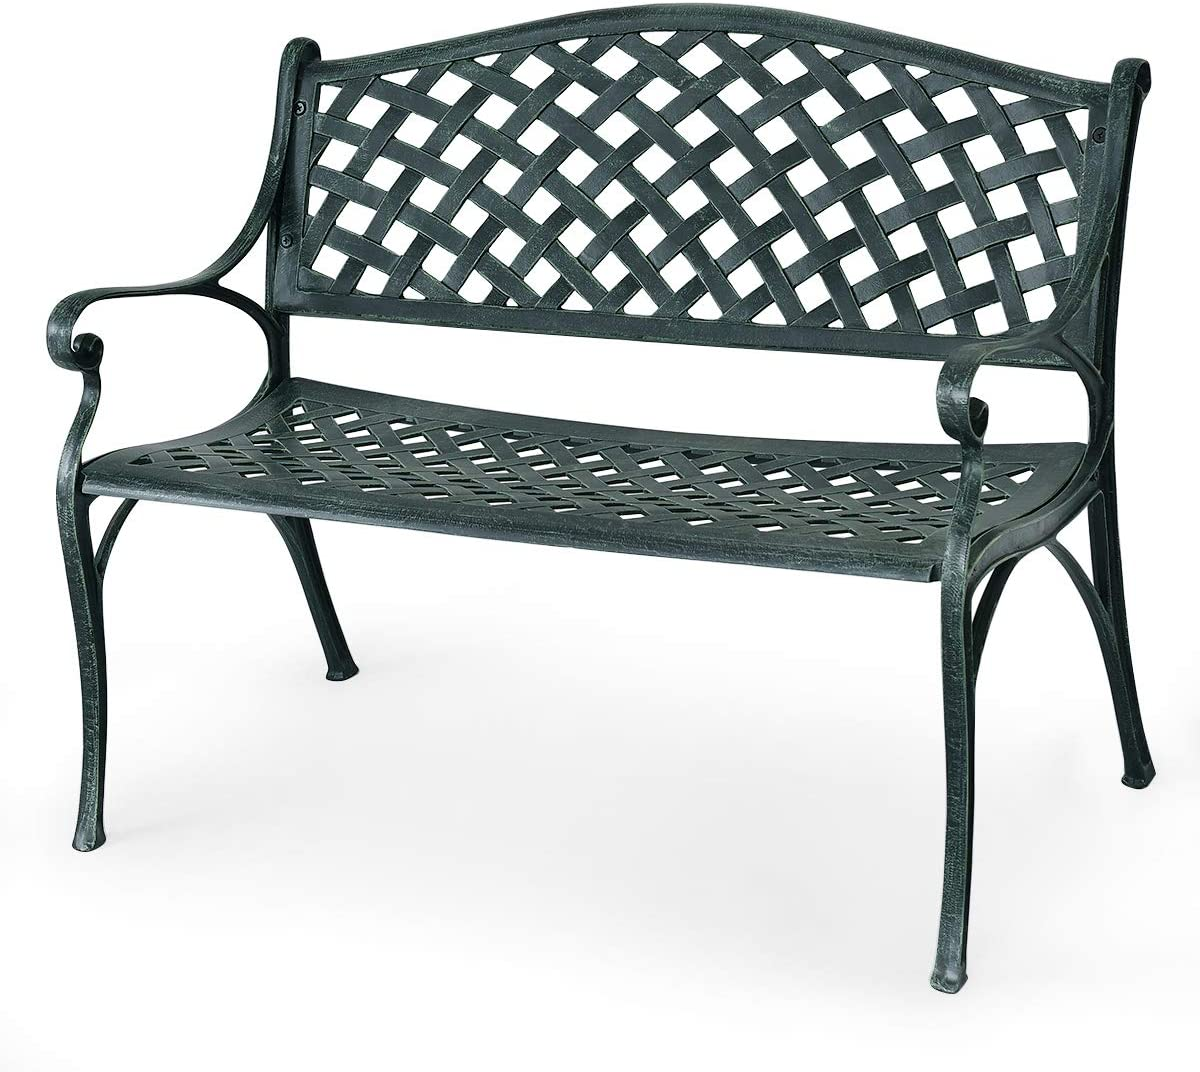 "Giantex 40"" Outdoor Antique Garden Bench Aluminum Frame Seats Chair Patio Garden Furni(Ancient Green)"